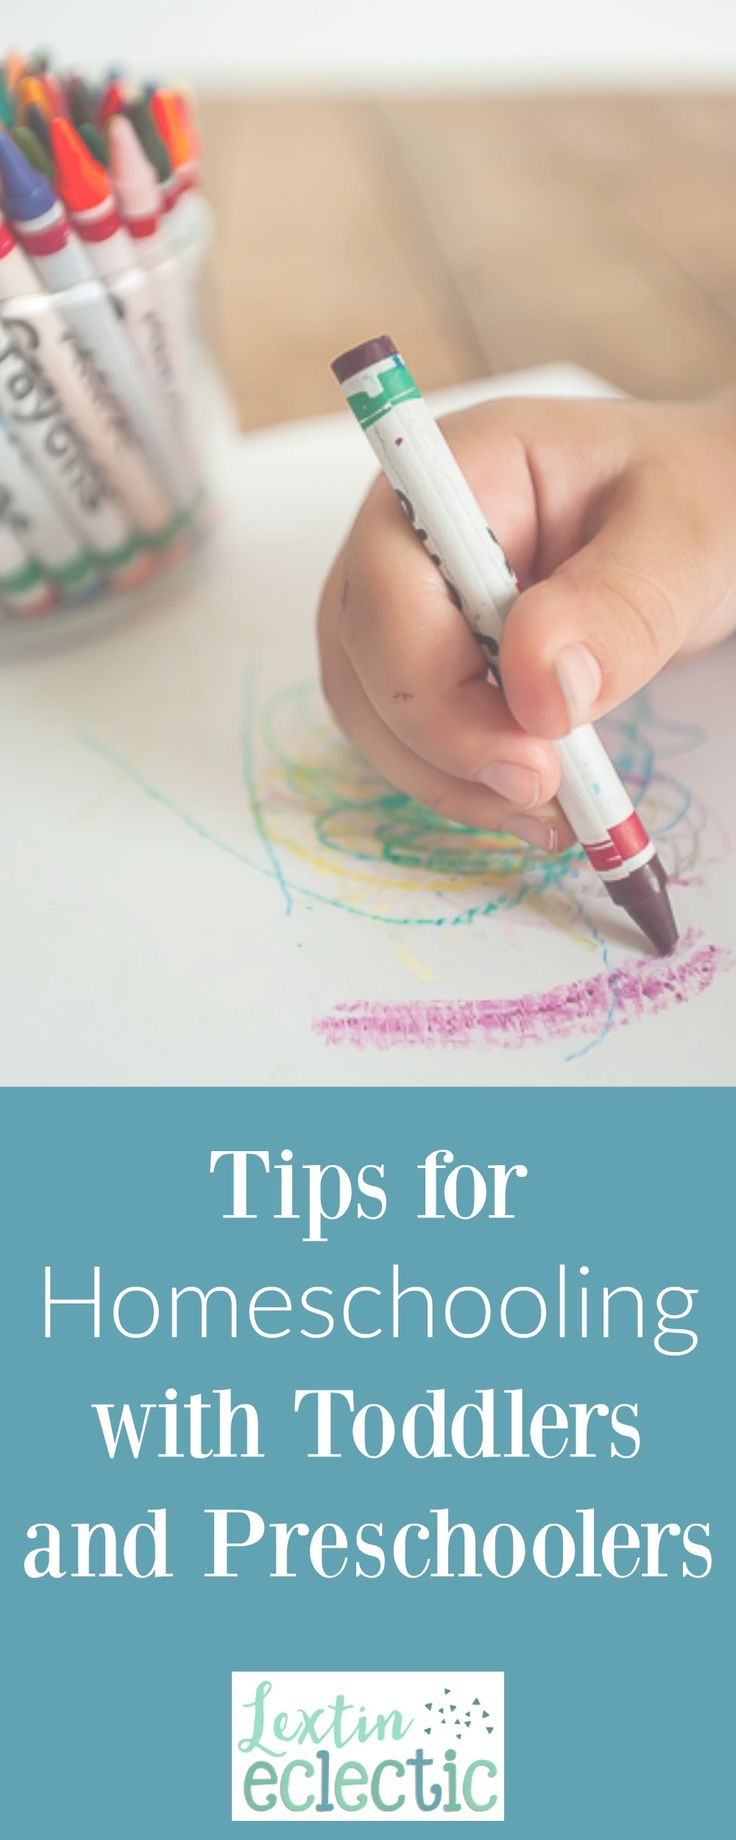 Tips for Homeschooling with Toddlers and Preschoolers